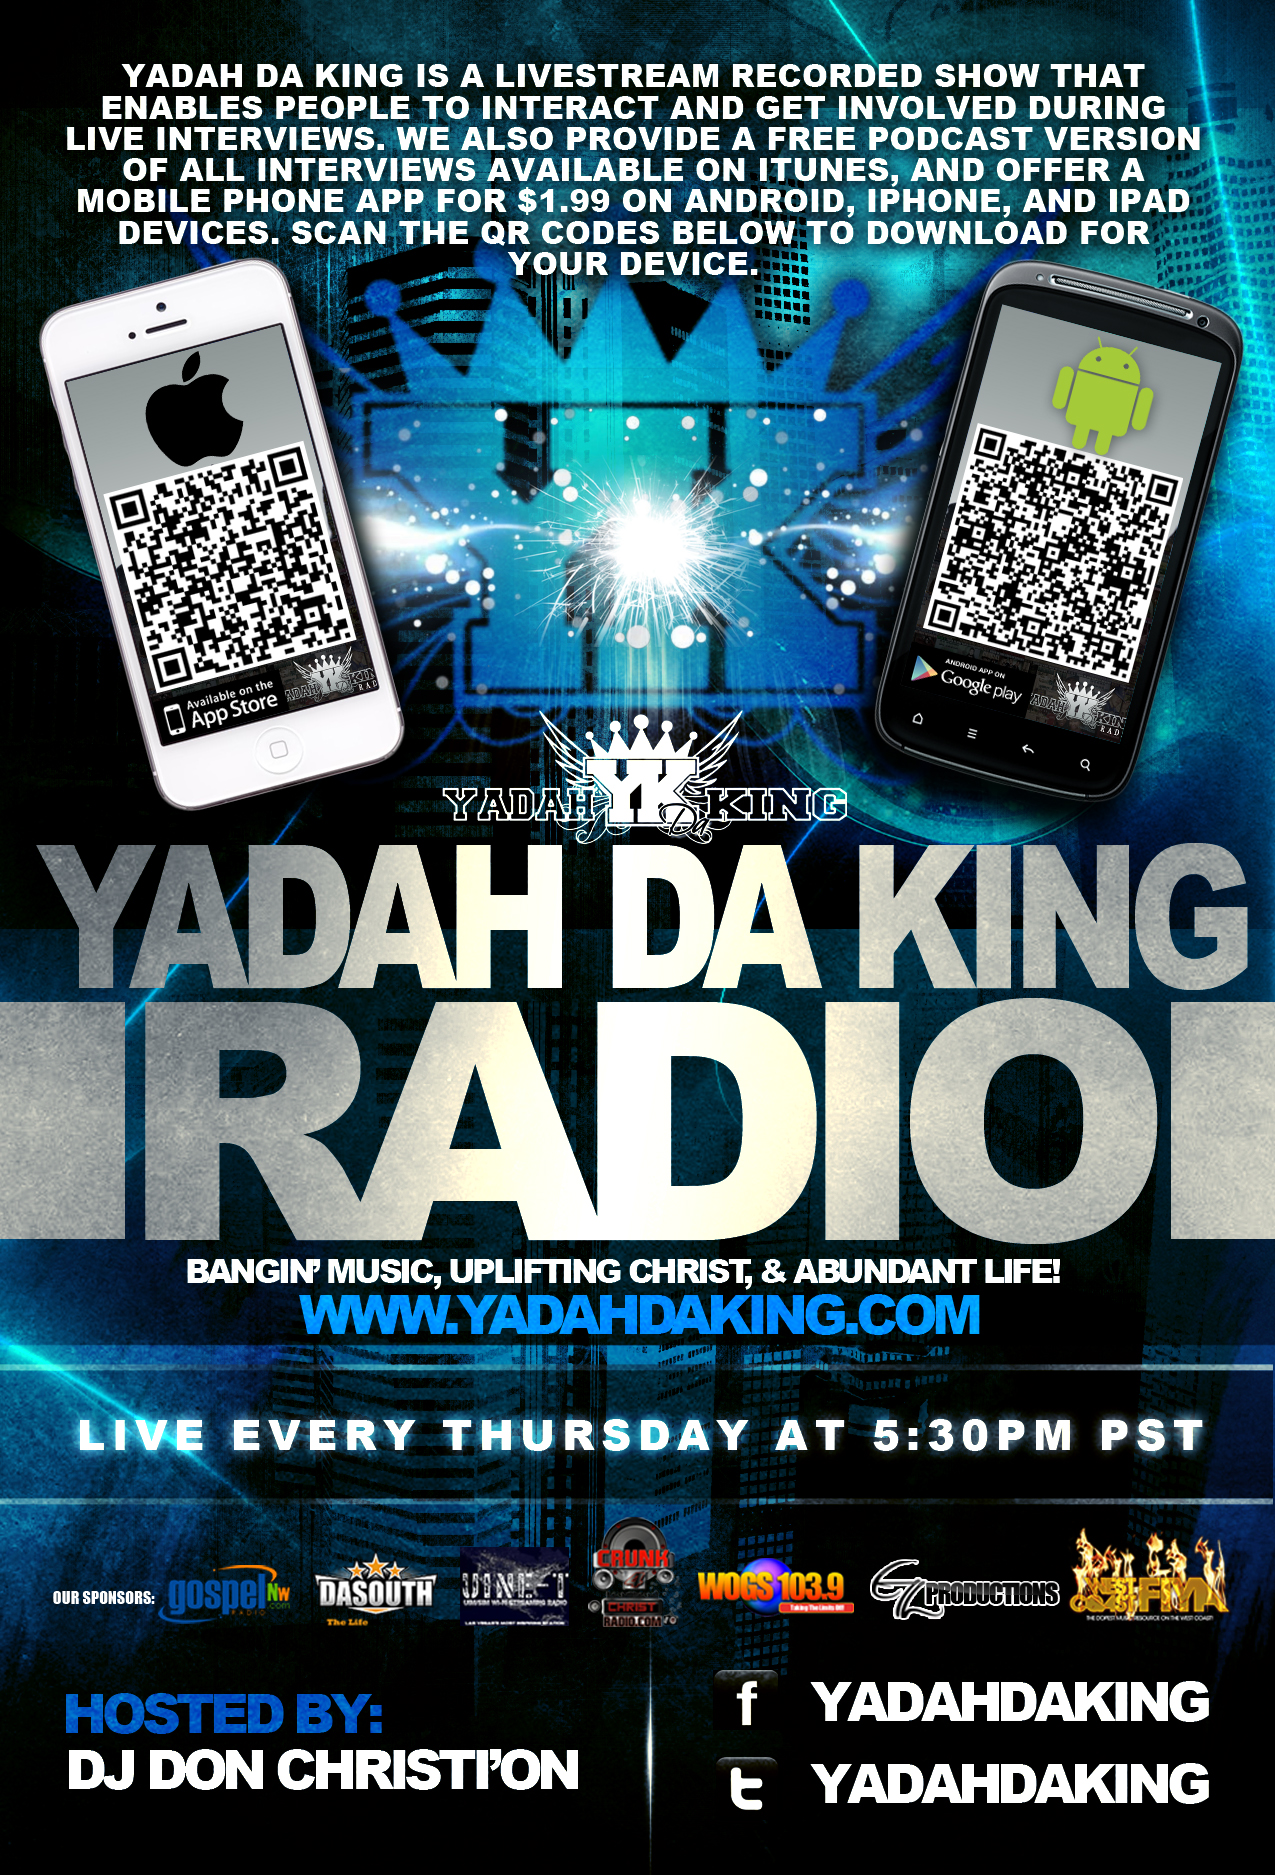 The Yadah Da King Radio Show